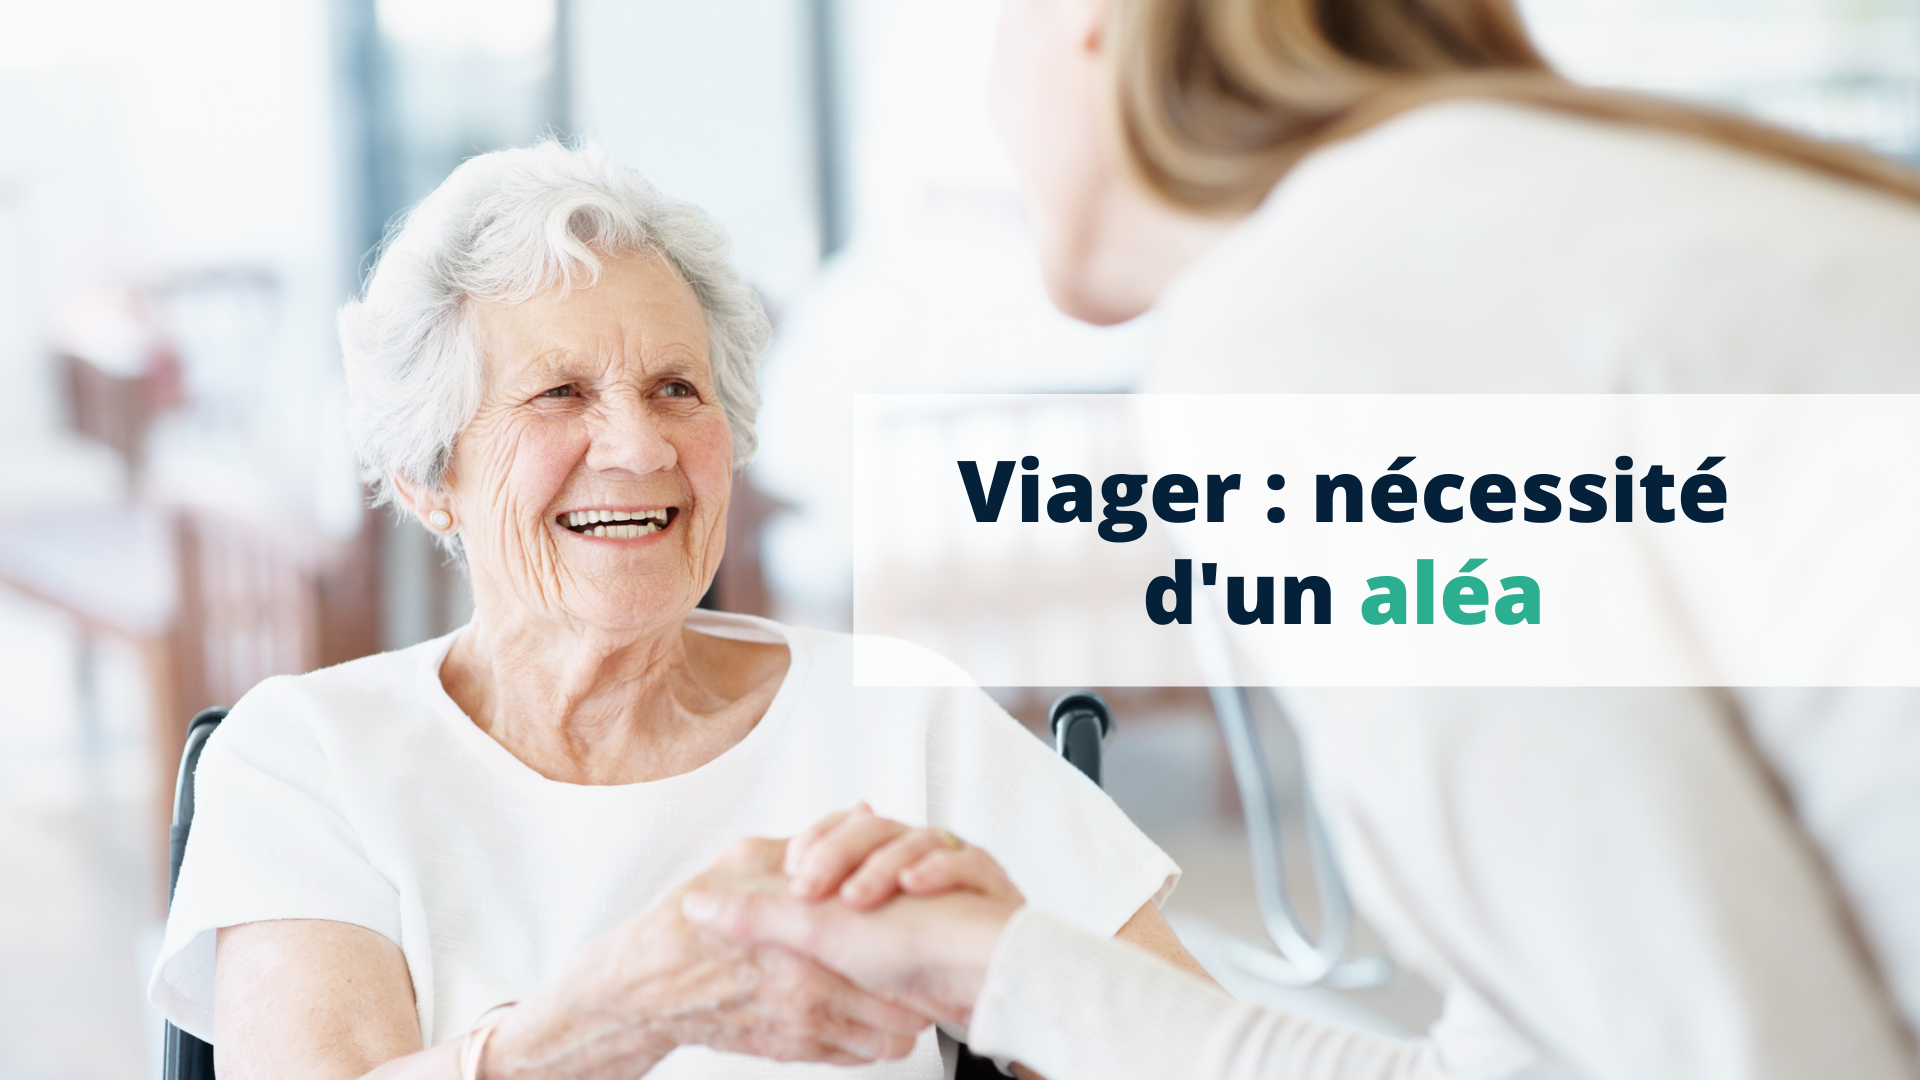 Viager nécessité d'un aléa - Start Learning